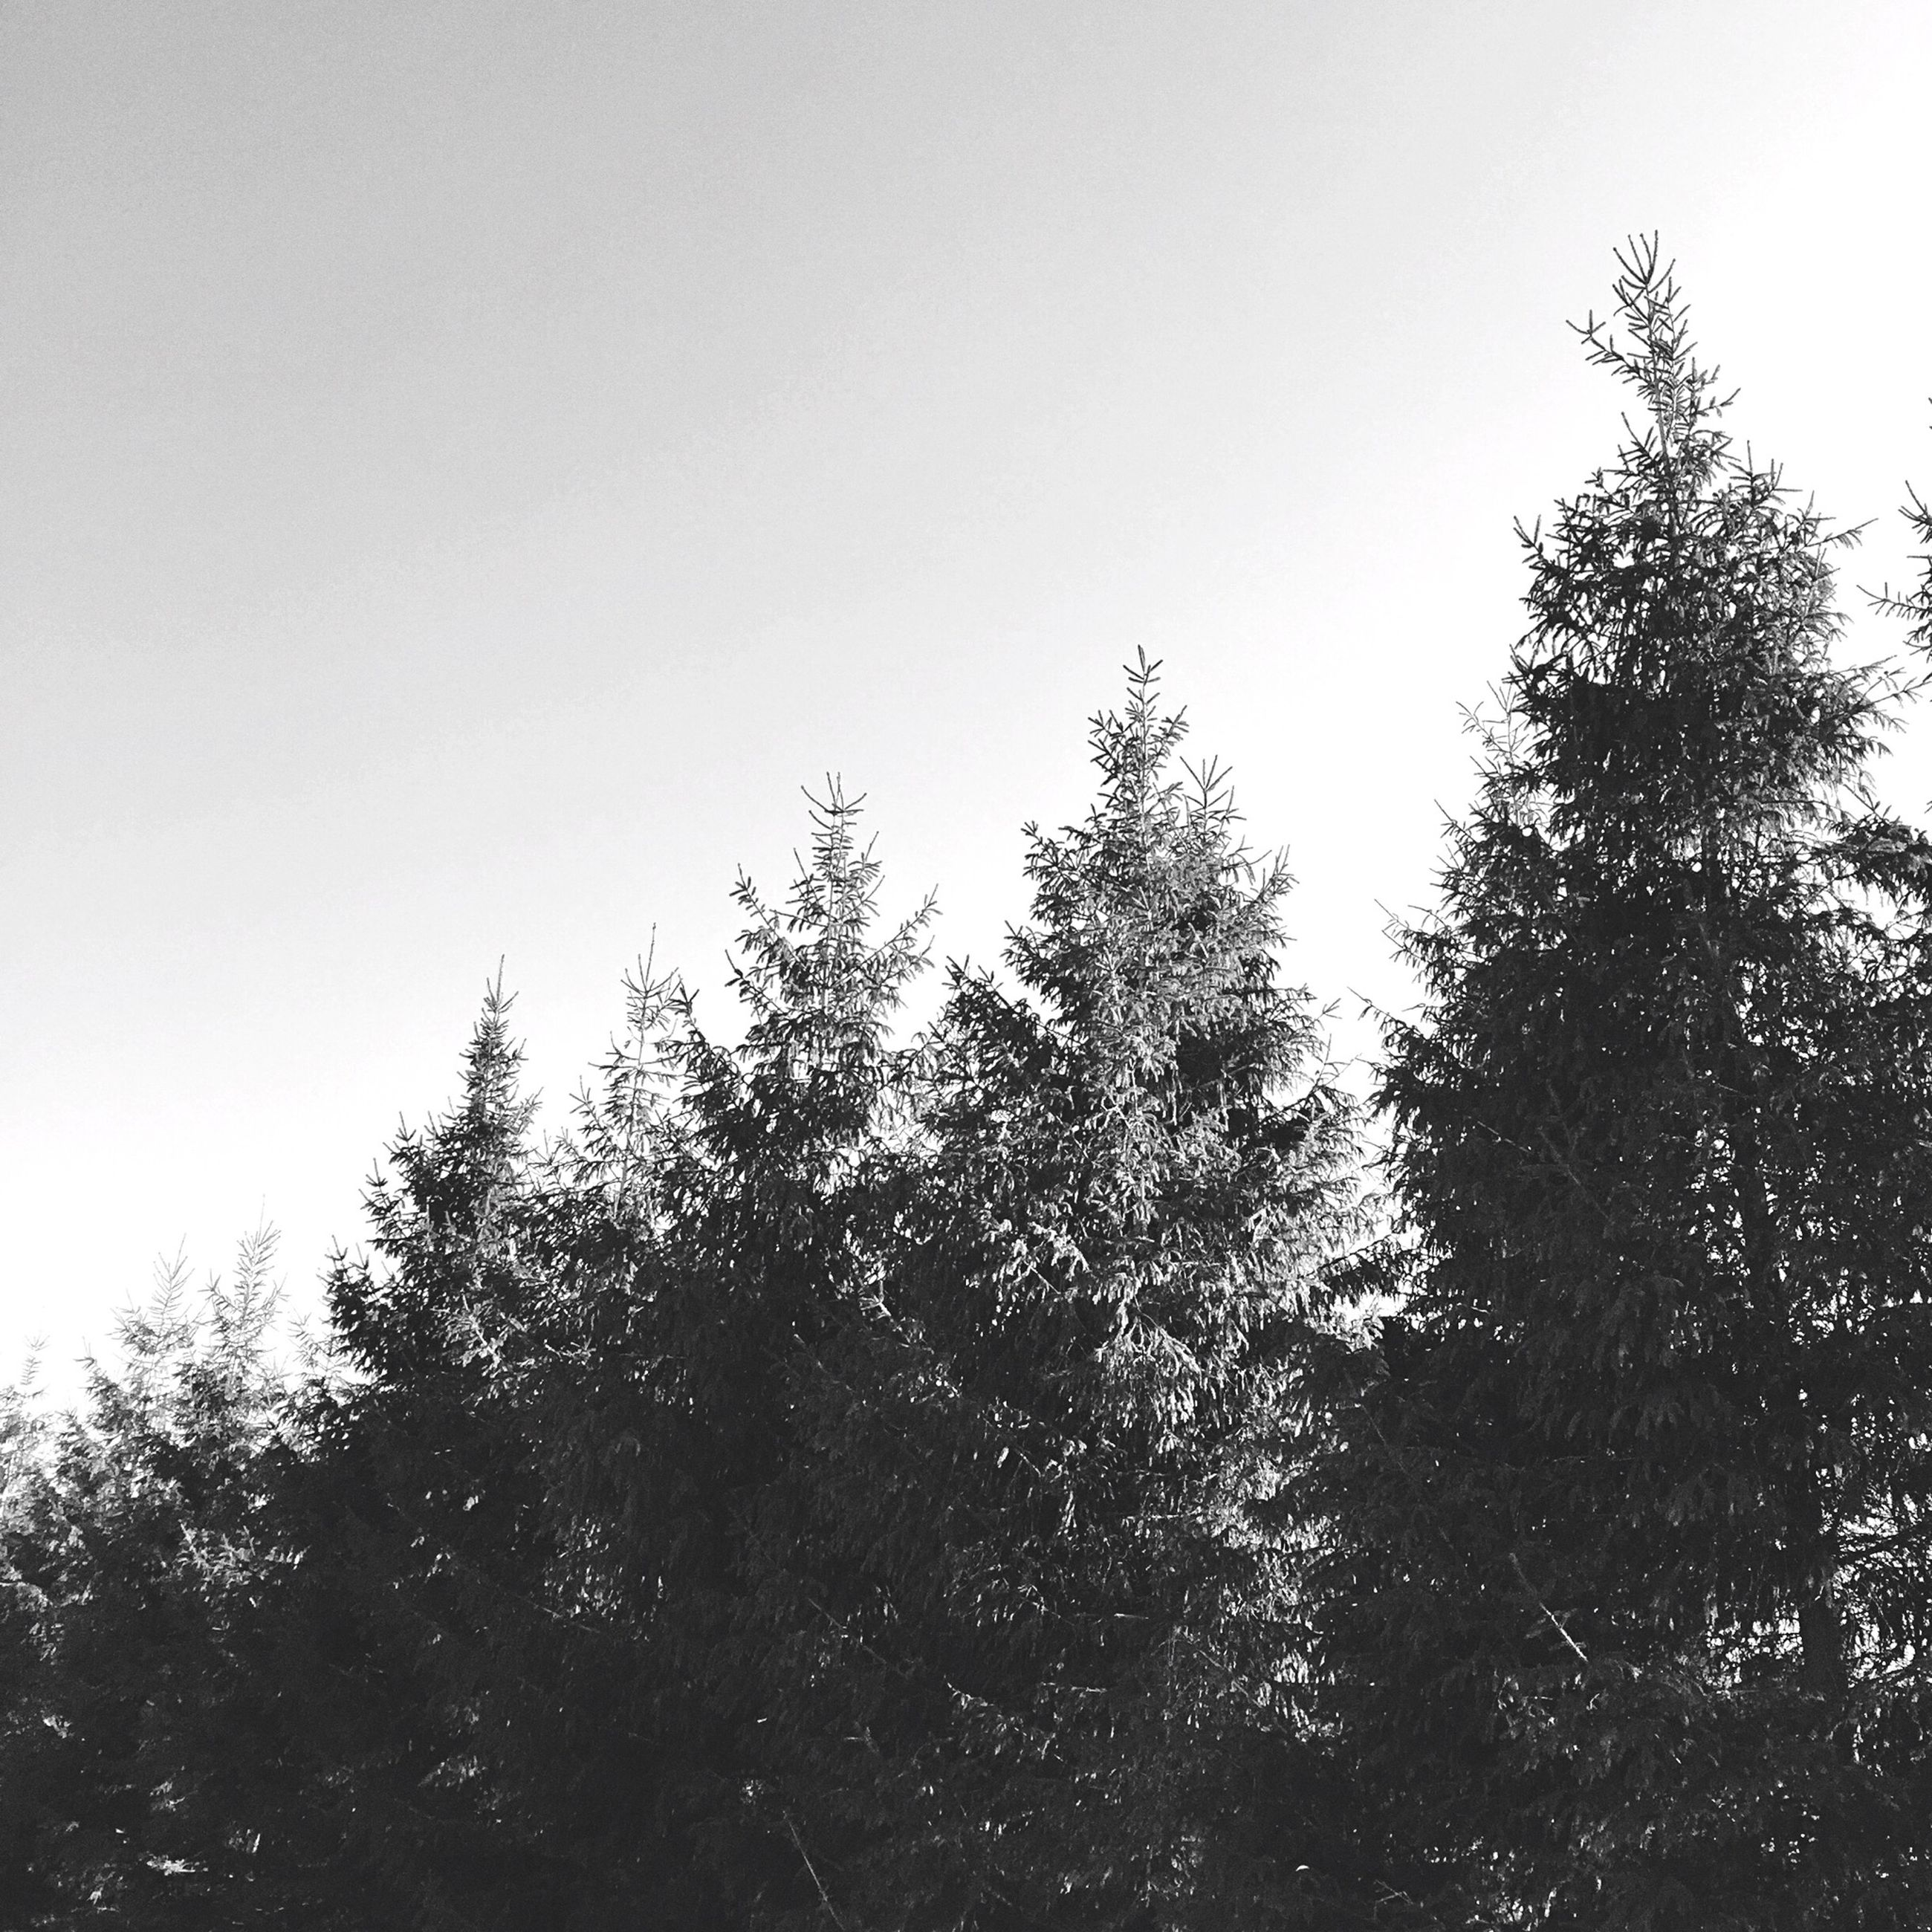 tree, clear sky, copy space, low angle view, tranquility, growth, beauty in nature, tranquil scene, nature, scenics, branch, sky, silhouette, outdoors, no people, day, idyllic, forest, non-urban scene